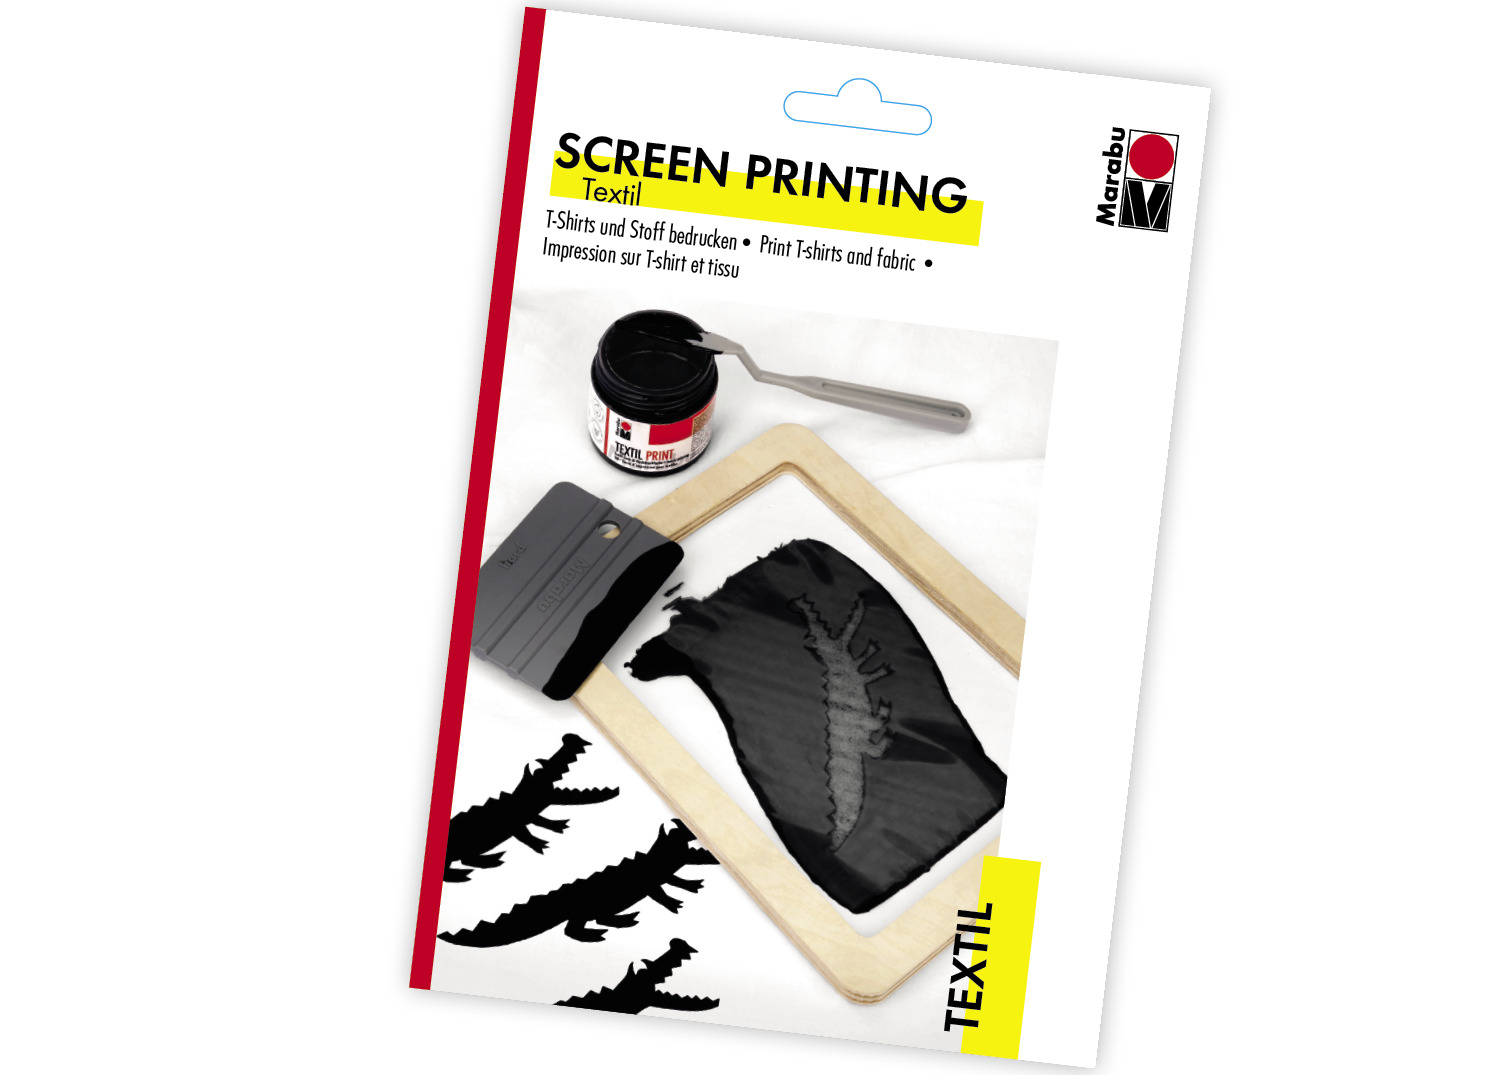 MARABU TEXTIL SCREEN PRINTING KIT FOR FABRICS PRINTING INK /& ACCESSORIES SET NEW